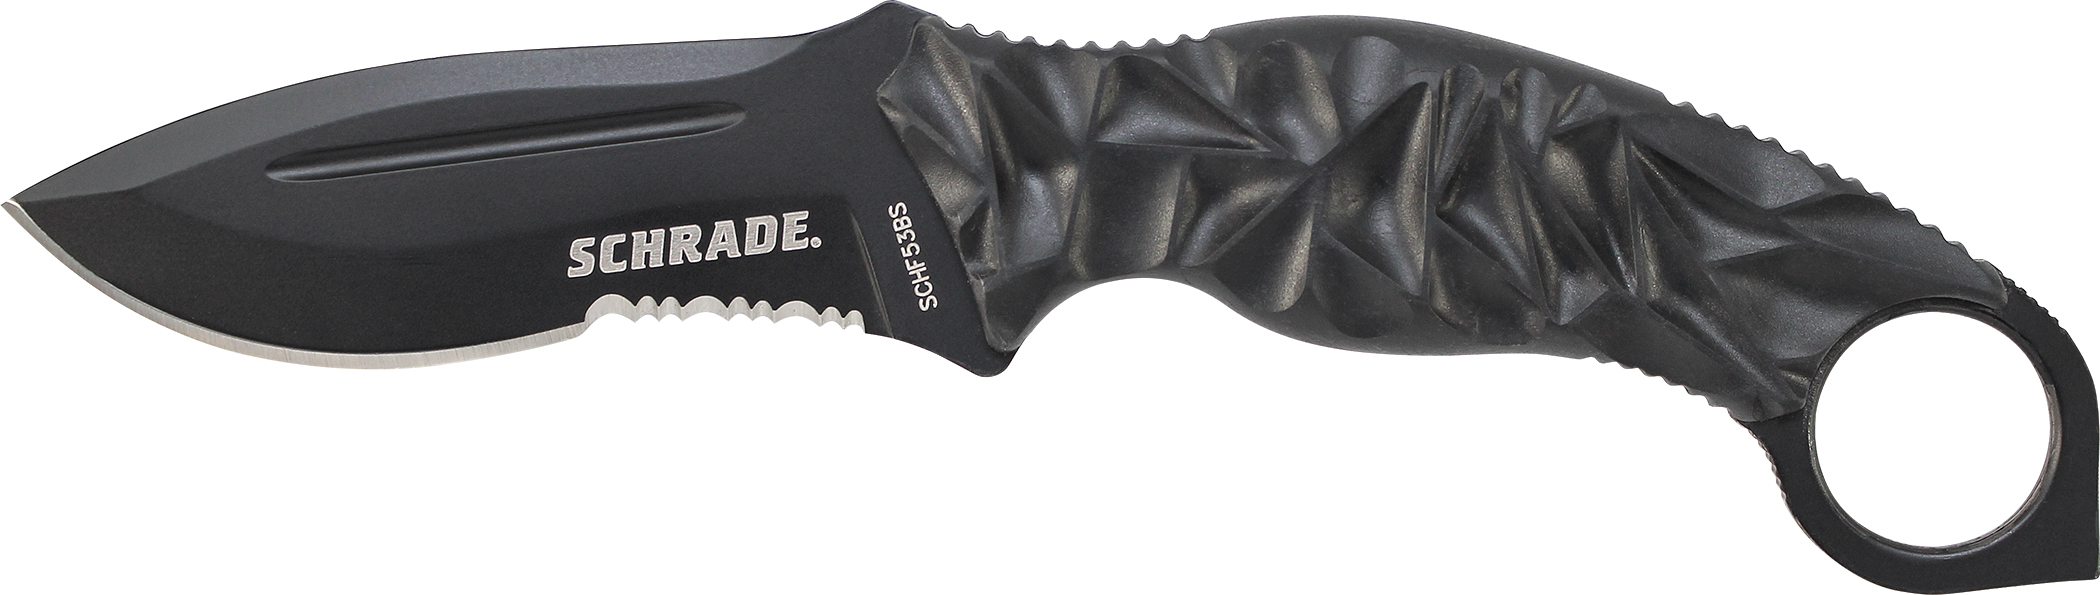 SCHF53BS - Schrade Partially Serrated Fixed Blade, AUS-8 Steel, MOLLE Compatible Sheath, 45